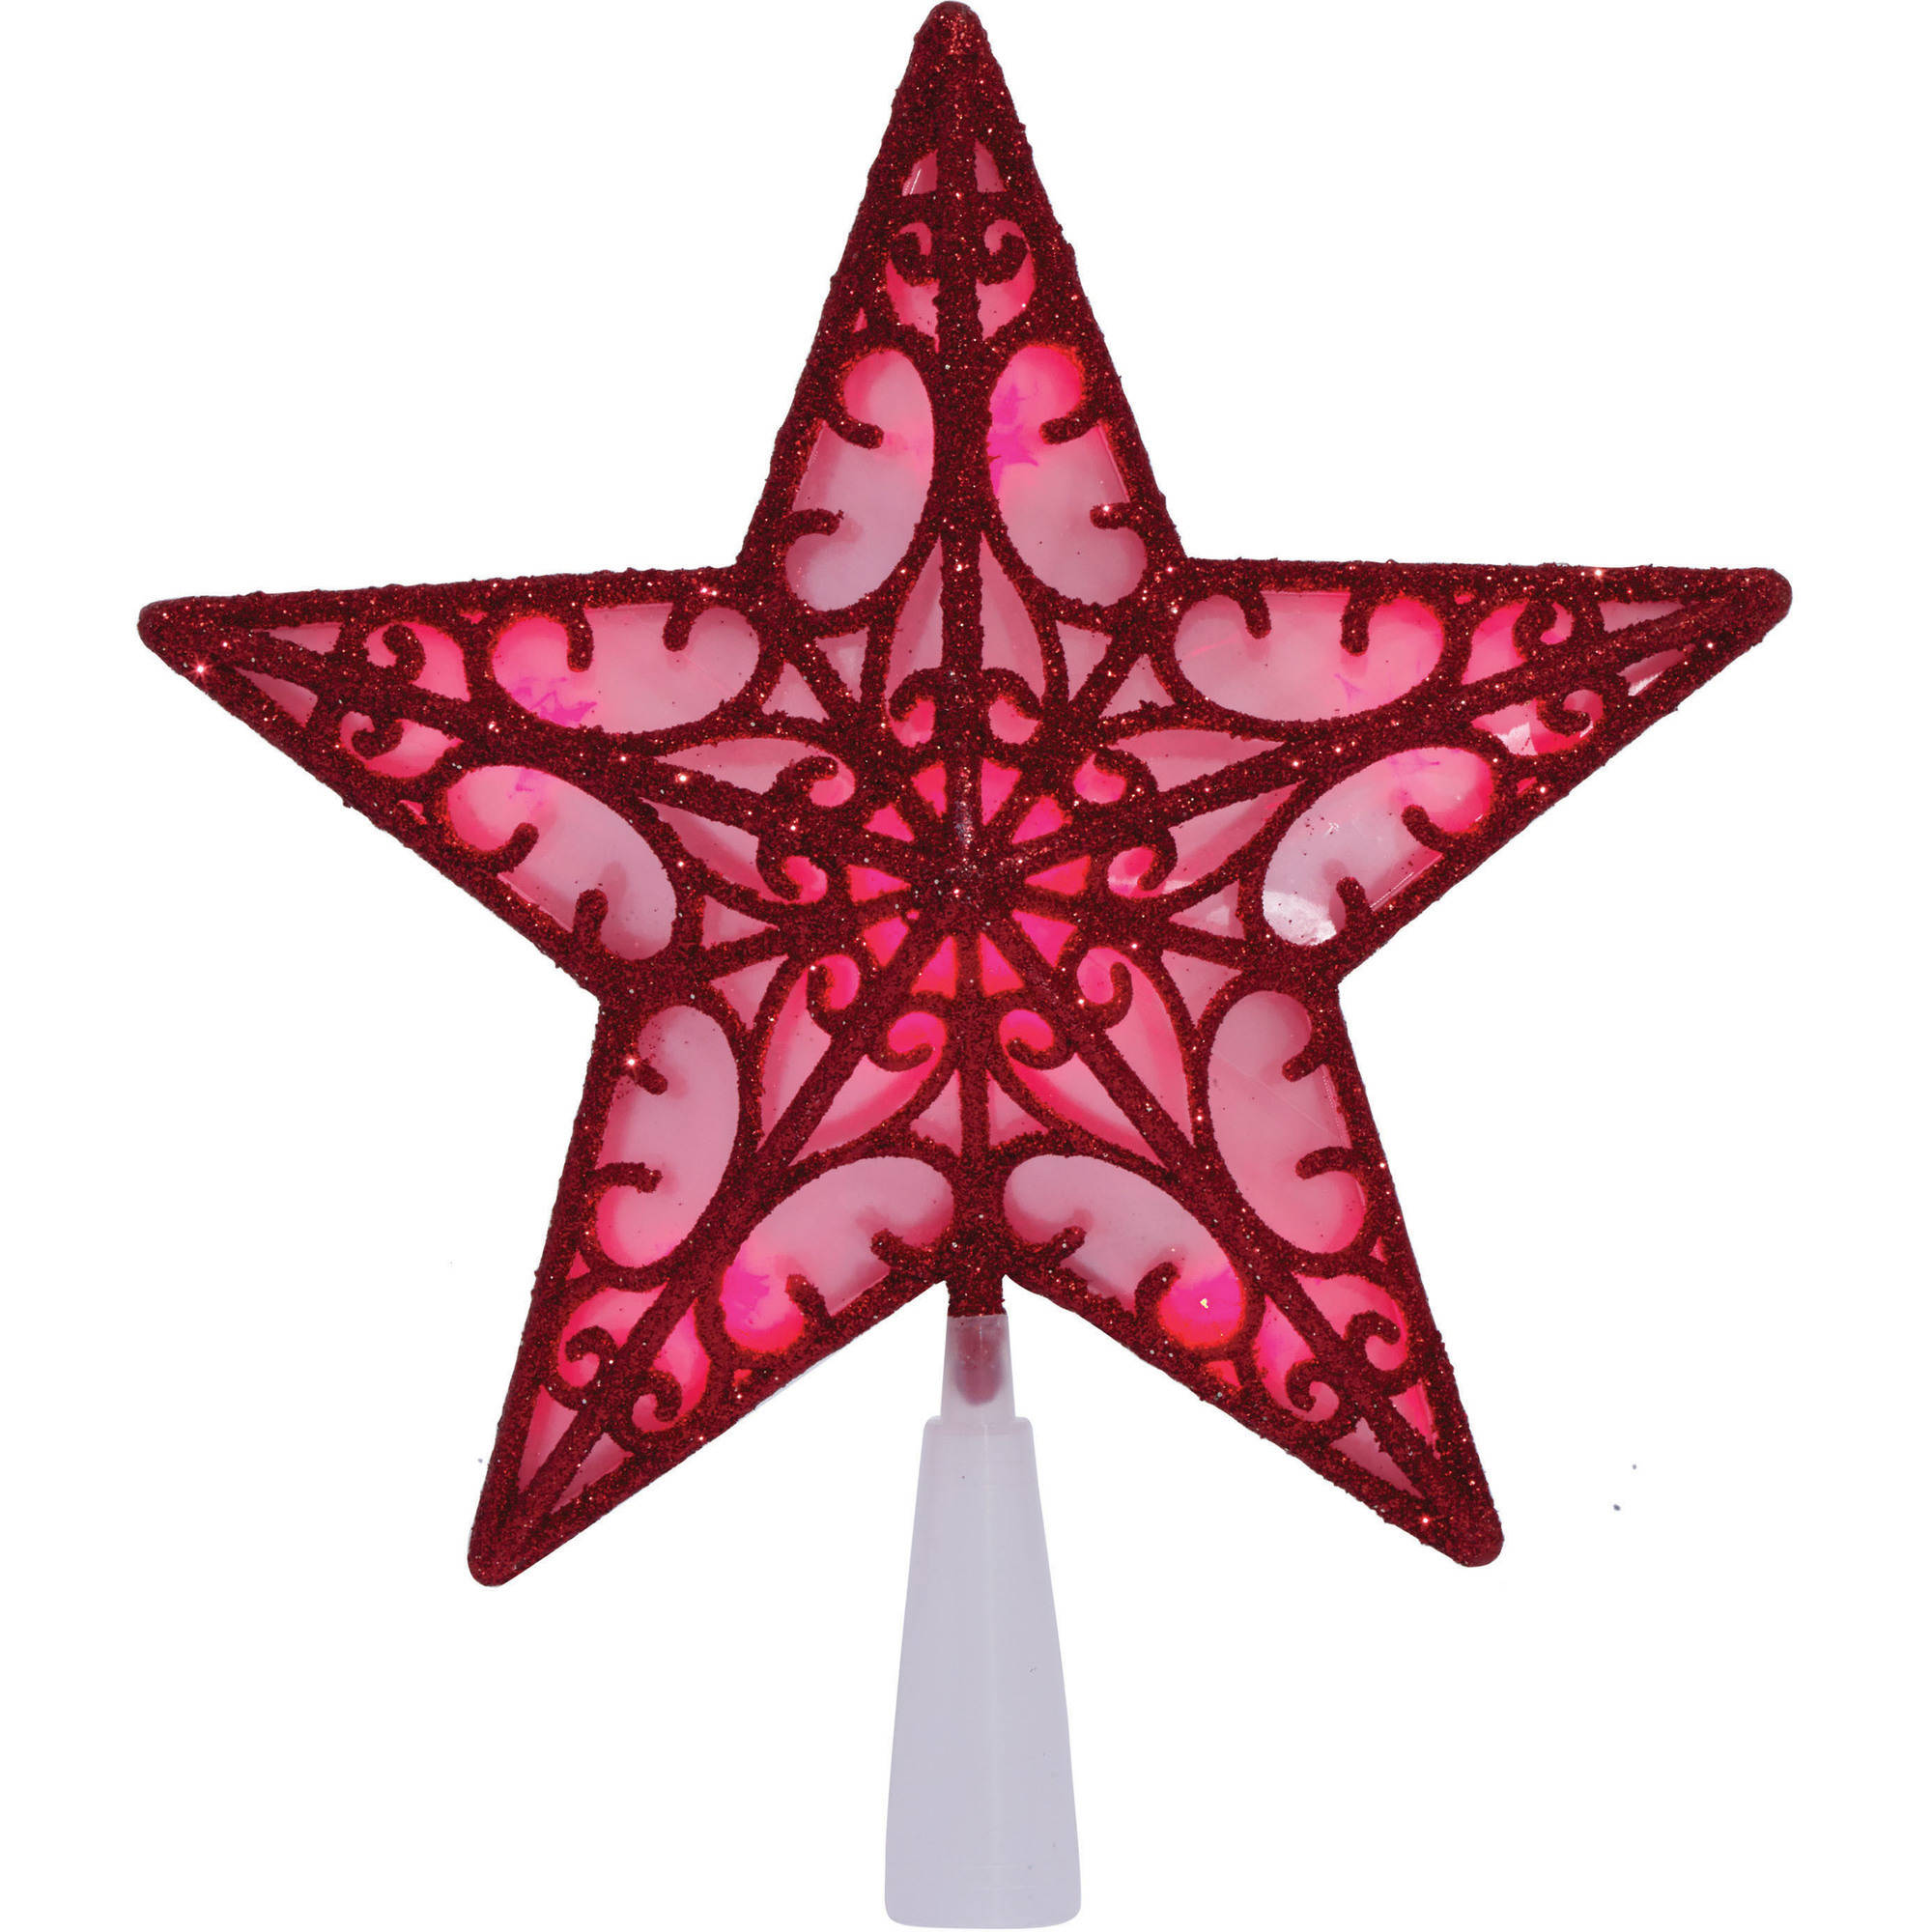 Holiday Time Christmas Ornaments 9 B/O 10 UL 9 Glittering Red Metal-Look Star Tree Topper with Red LED Bulbs